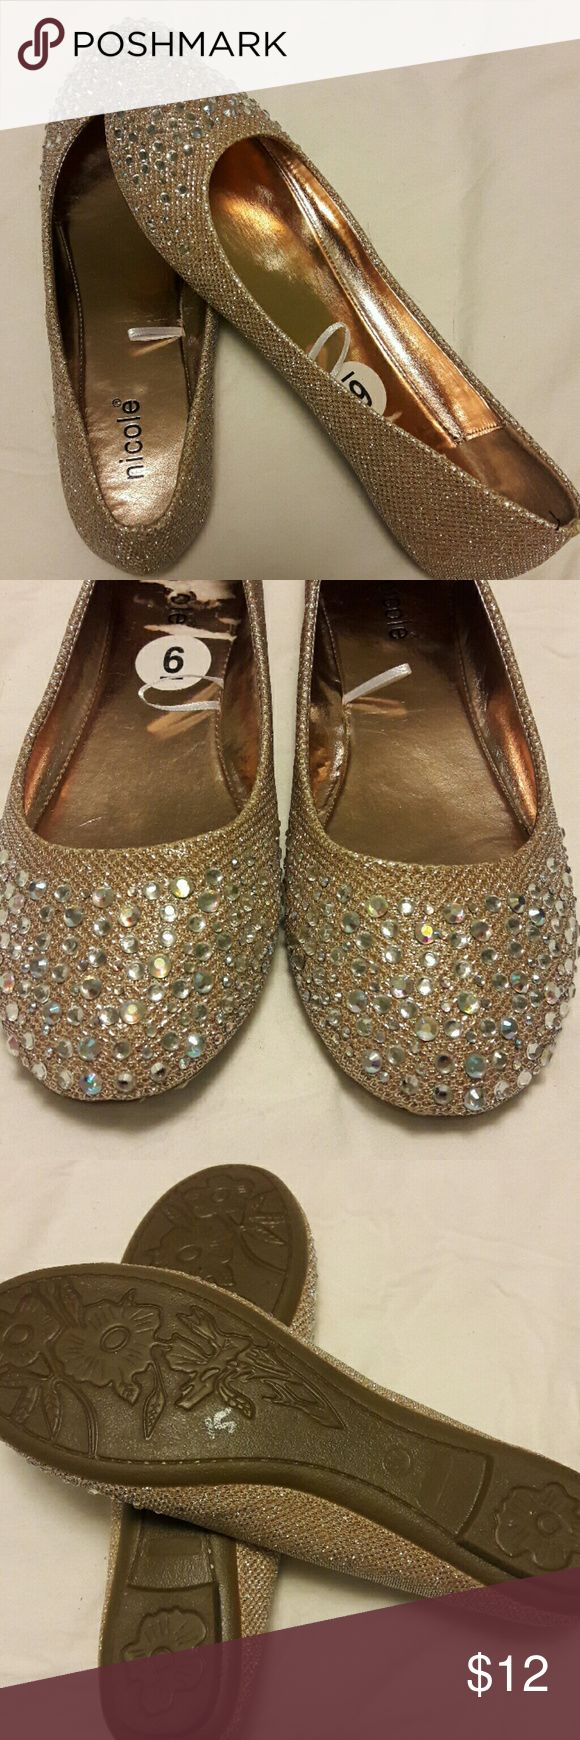 Gold flats Gold sparkle flats. Never been worn. Super cute but too small for me. nicole Shoes Flats & Loafers